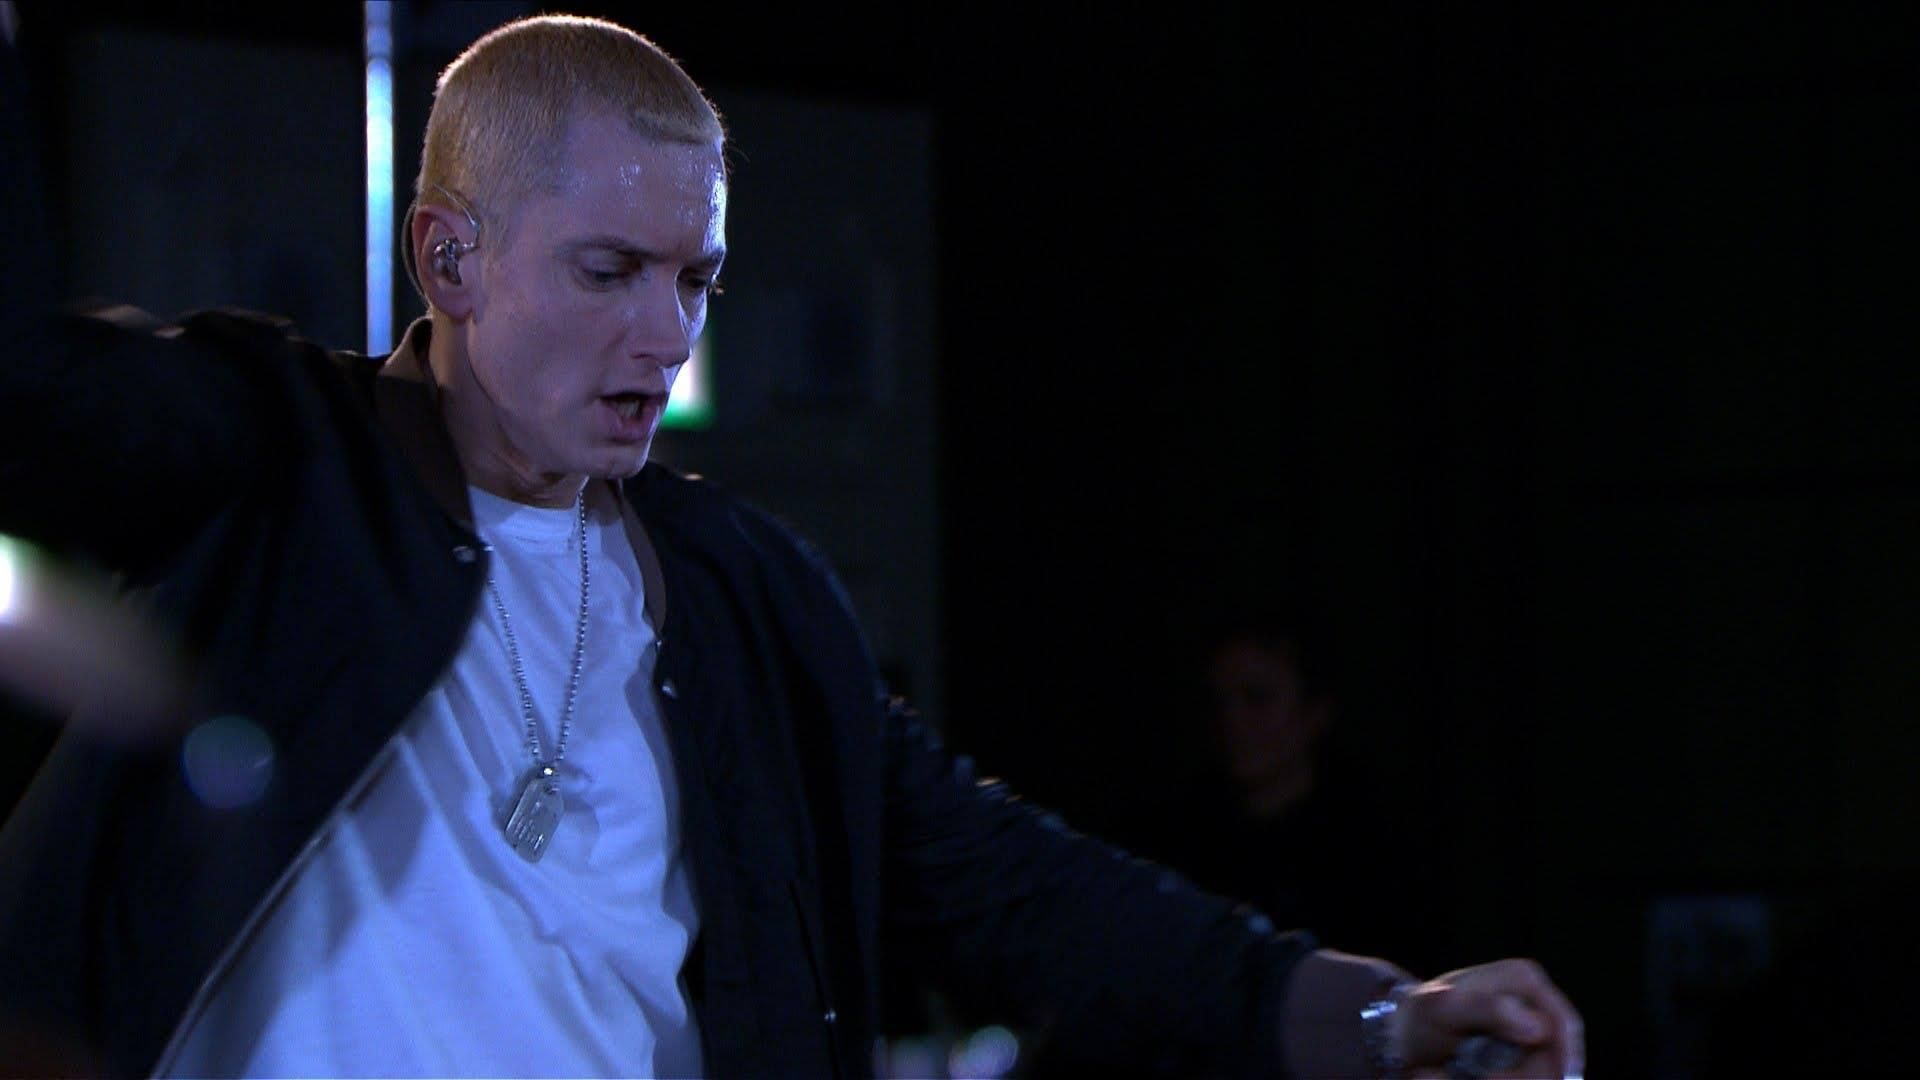 Download eminem 2014 images Desktop Backgrounds for HD 1920x1080